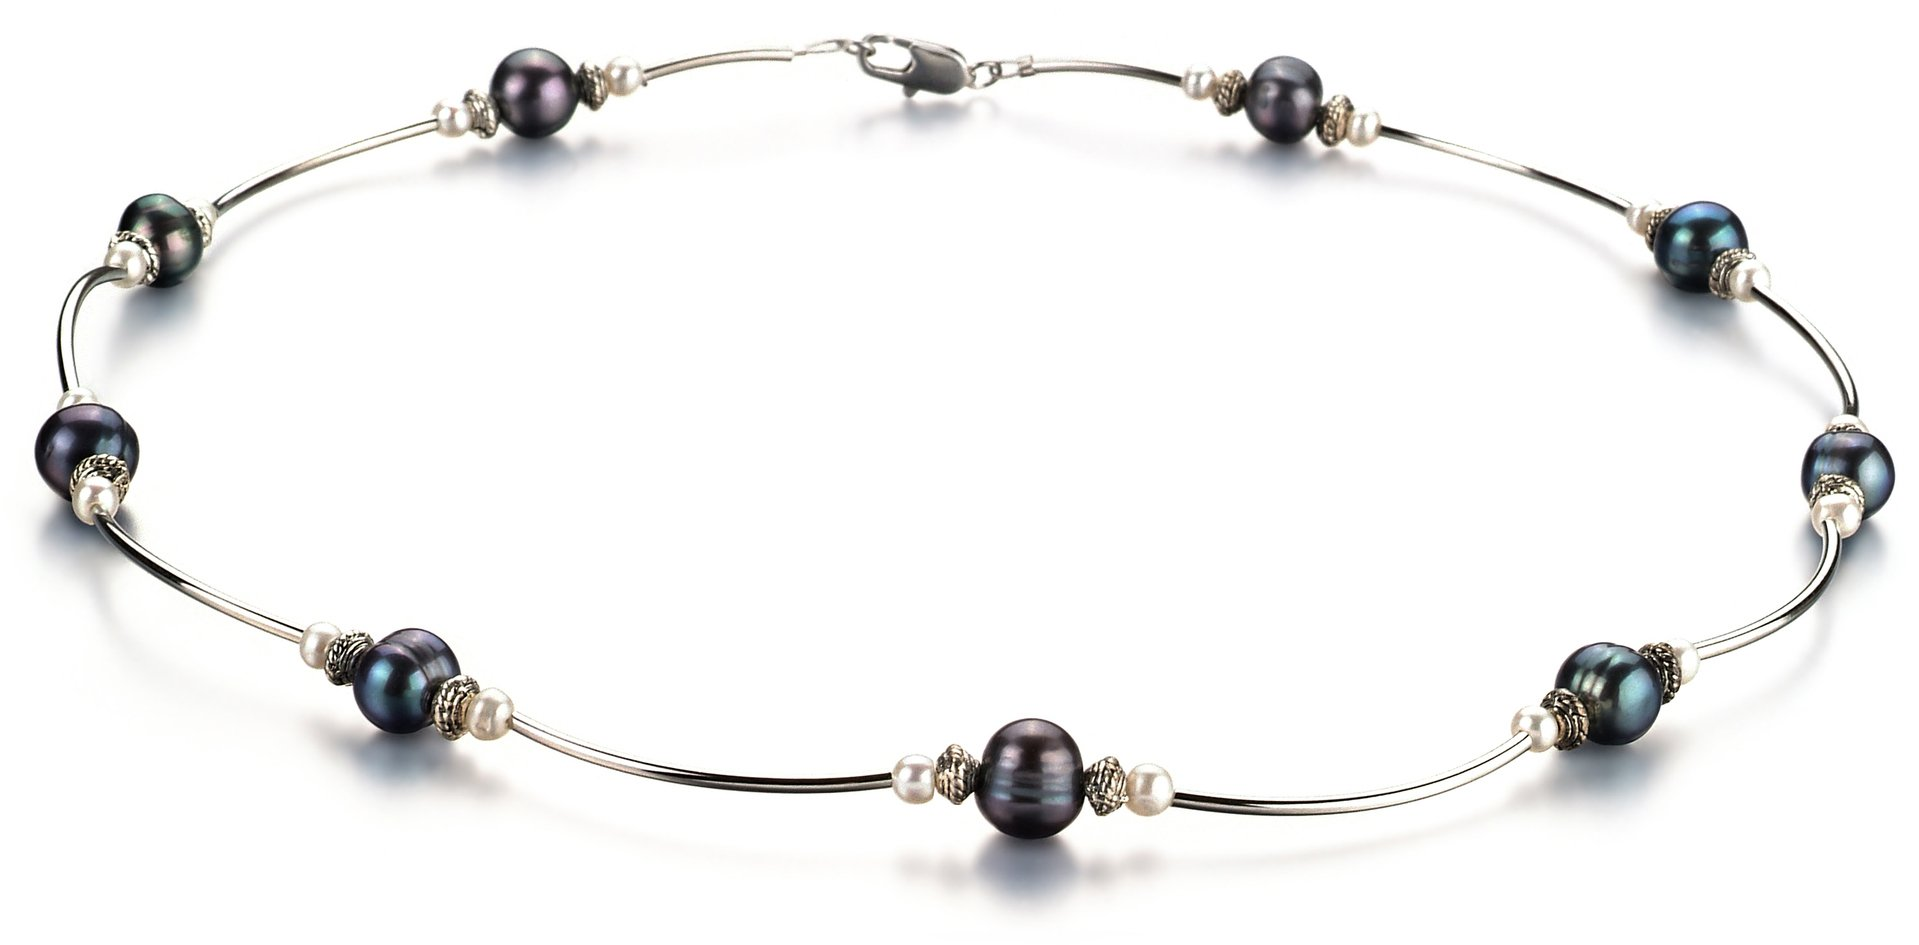 Sophia Black and White 5-7mm A Quality Freshwater Cultured Pearl Necklace-18 in Princess length